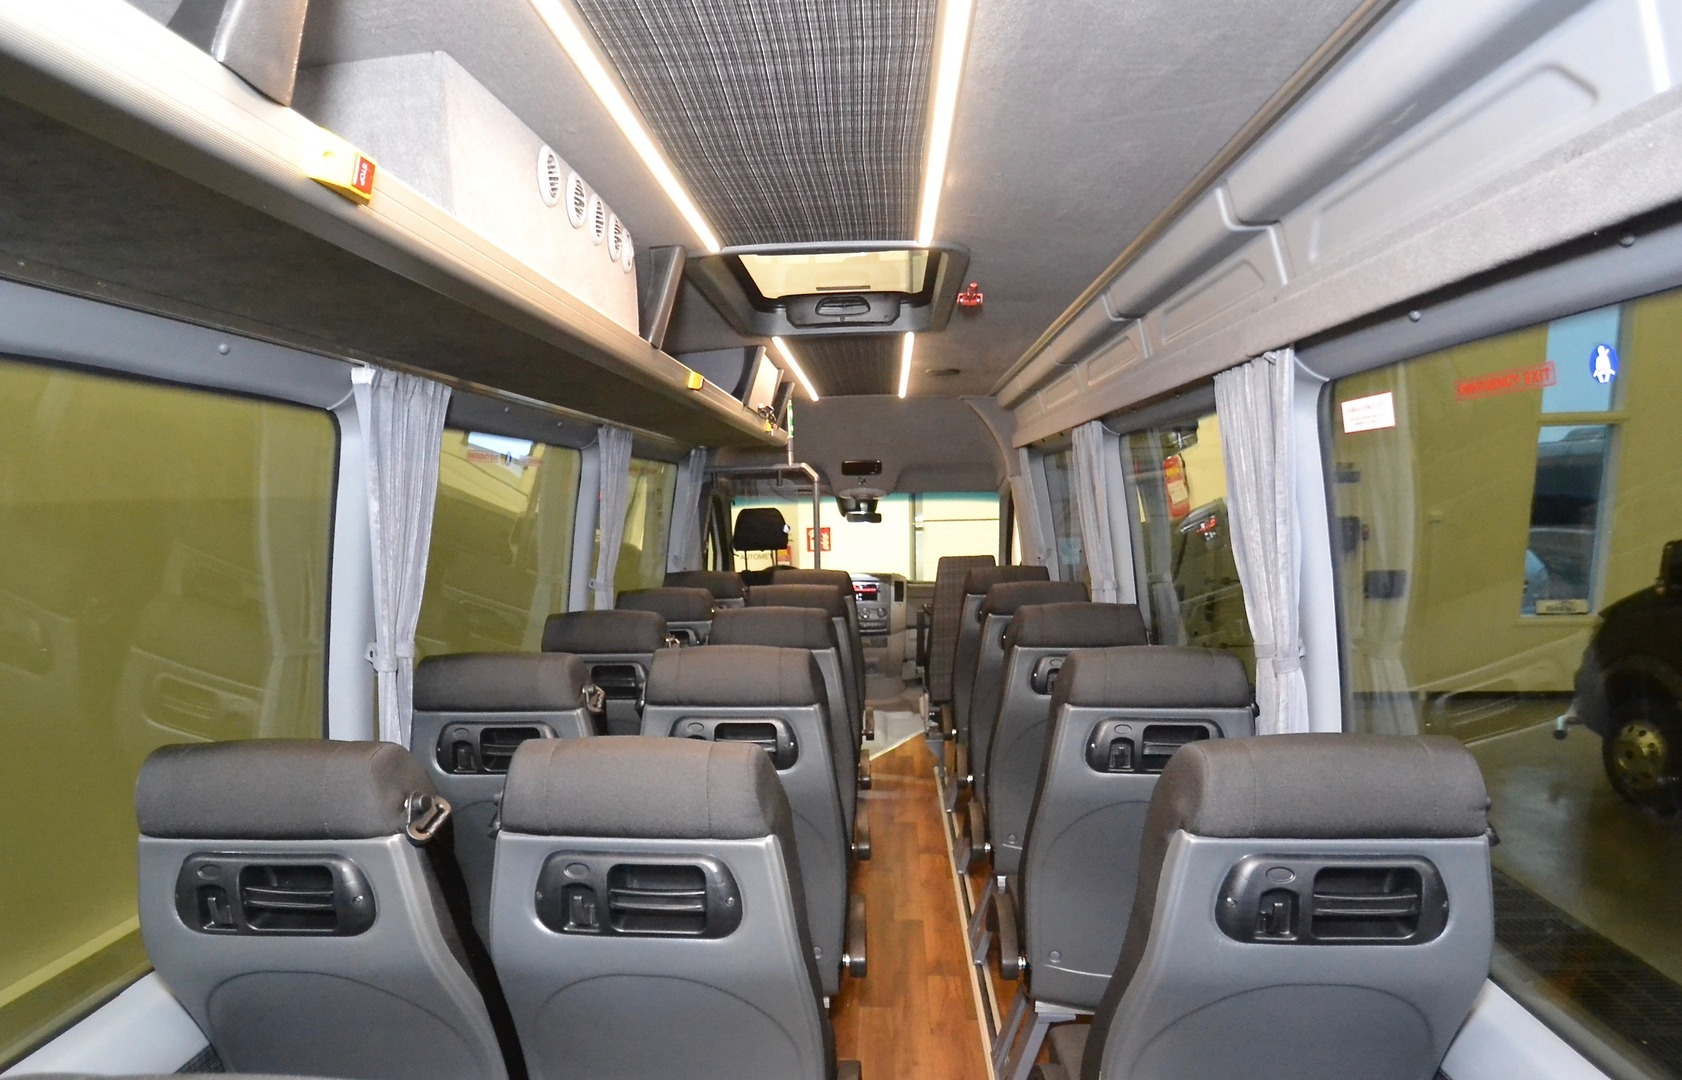 MERCEDES-BENZ Sprinter, 516 CDI Automet Koulu